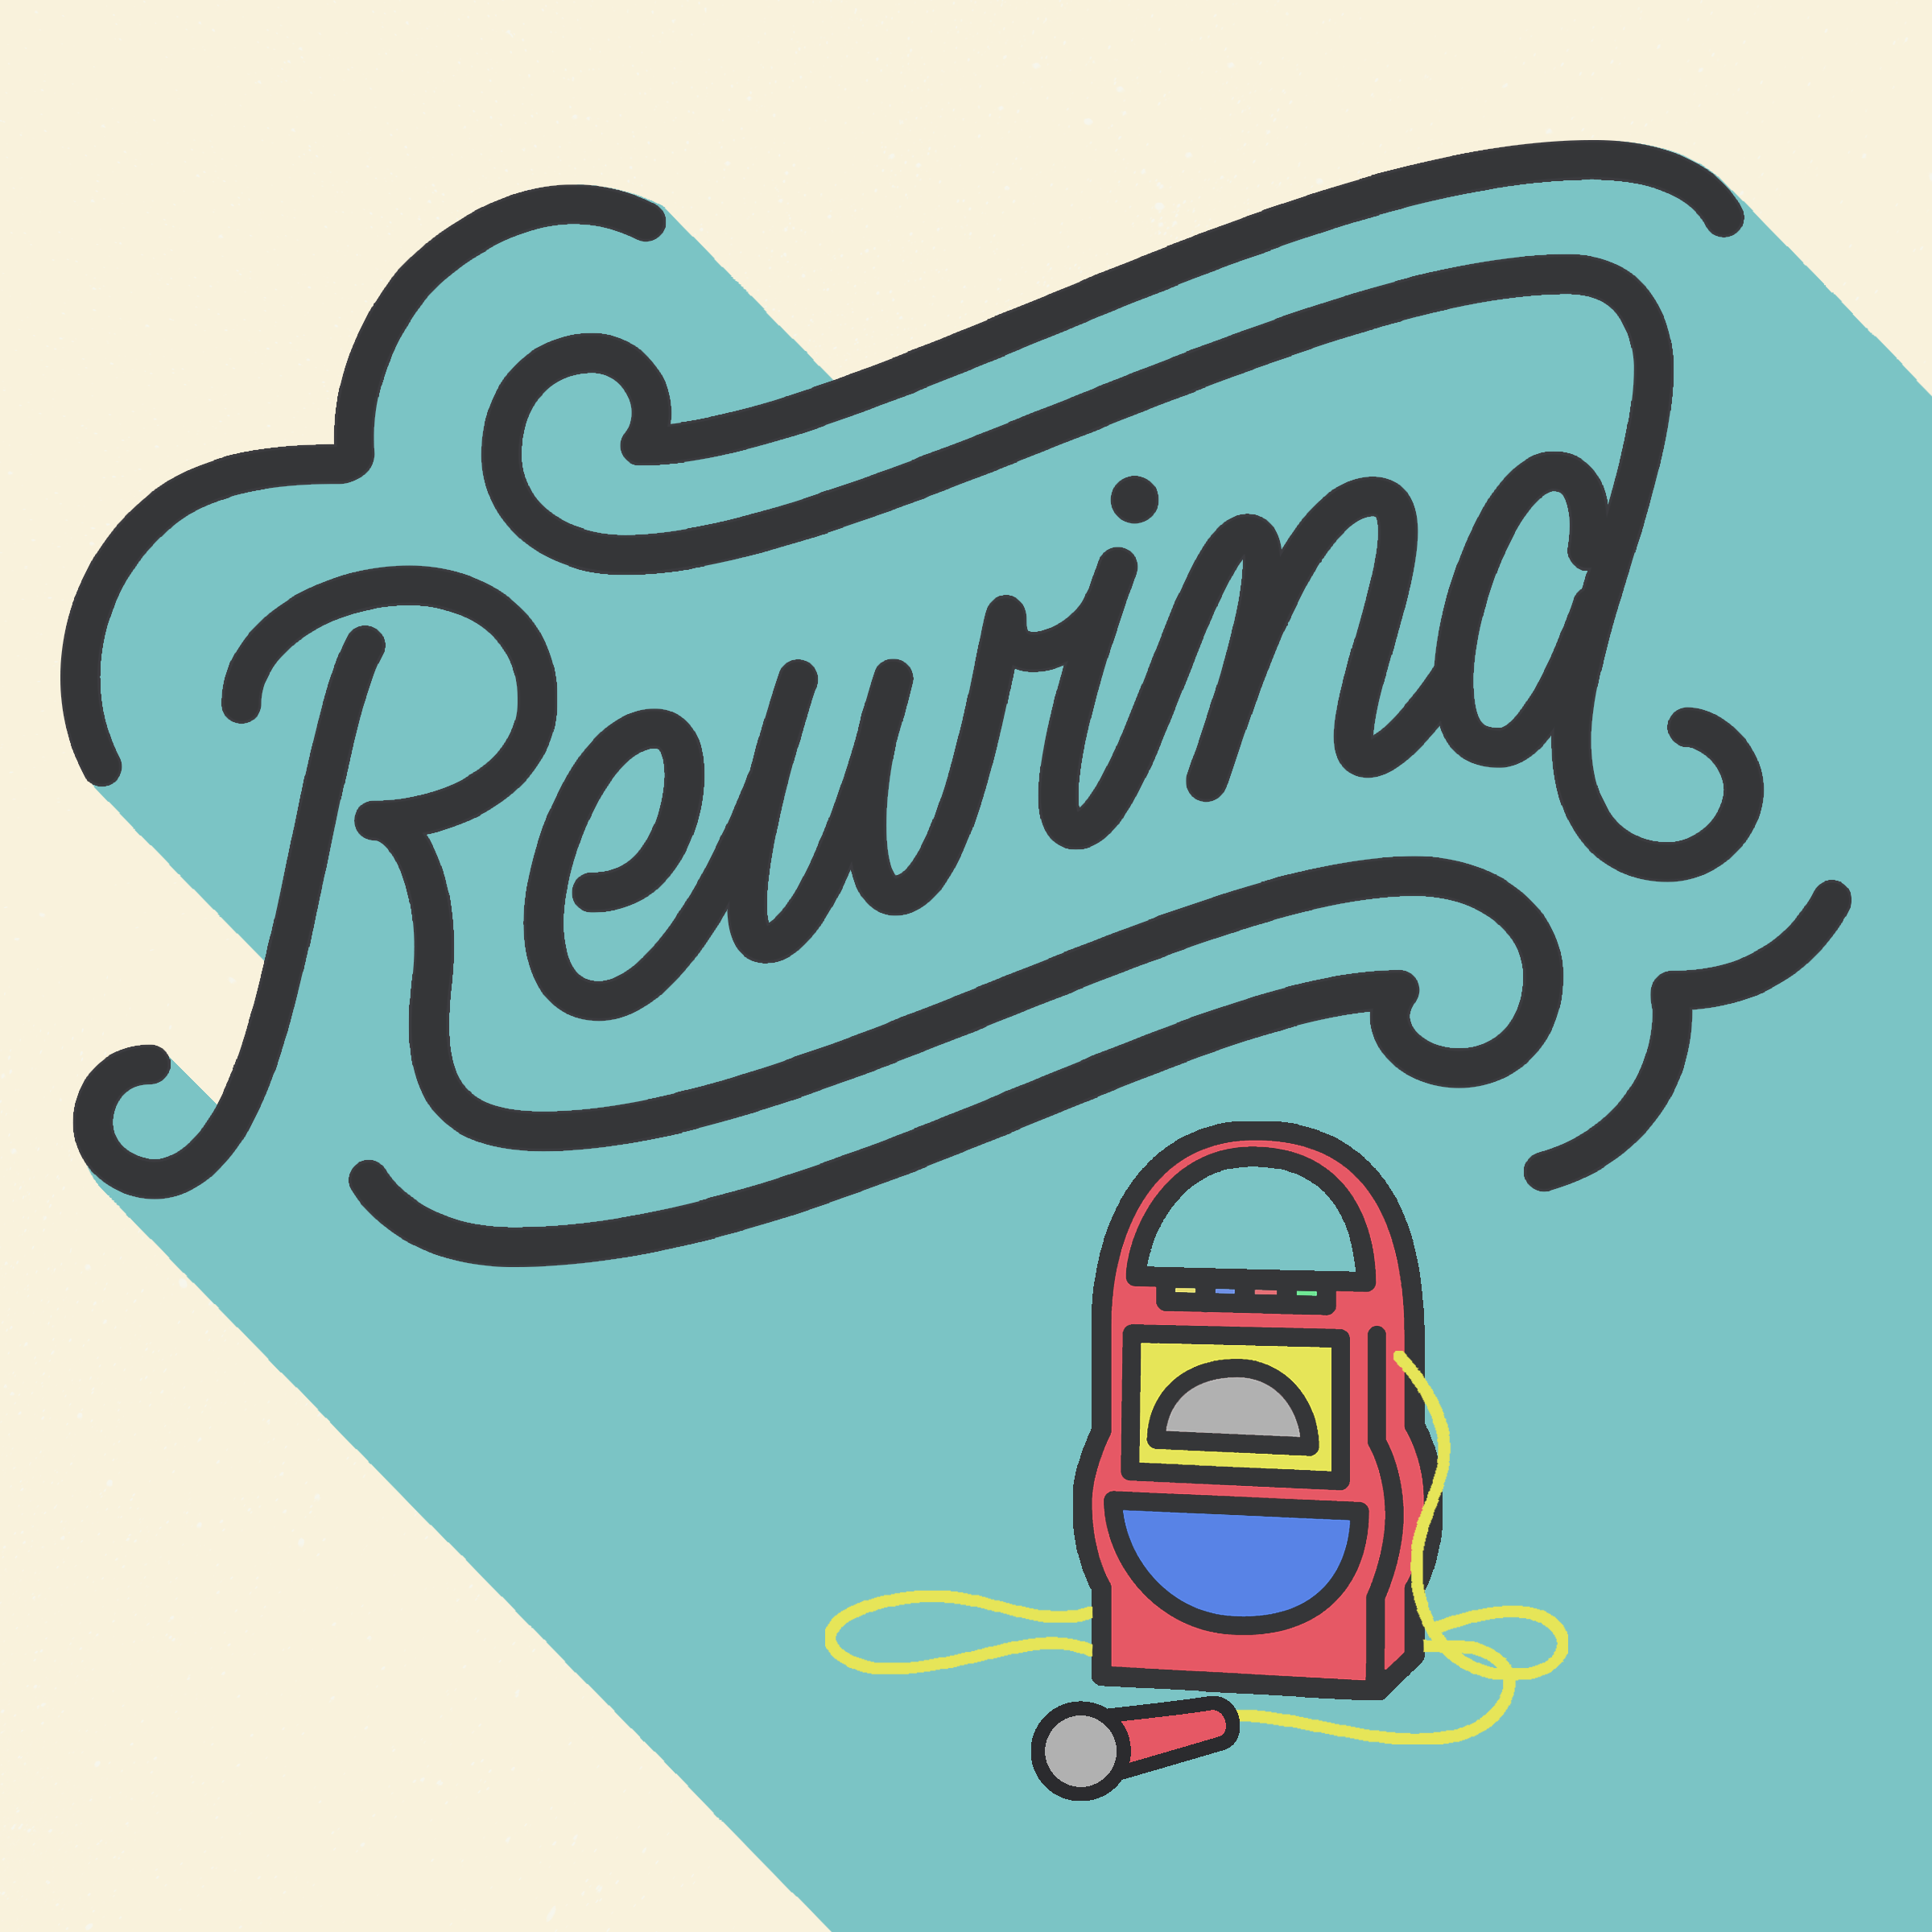 """Rewind - Louis Futon   This week's #NewMusicMonday pick is a melodic, feel-good track called """"Rewind"""" by Louis Futon featuring vocalist Ashe and..."""